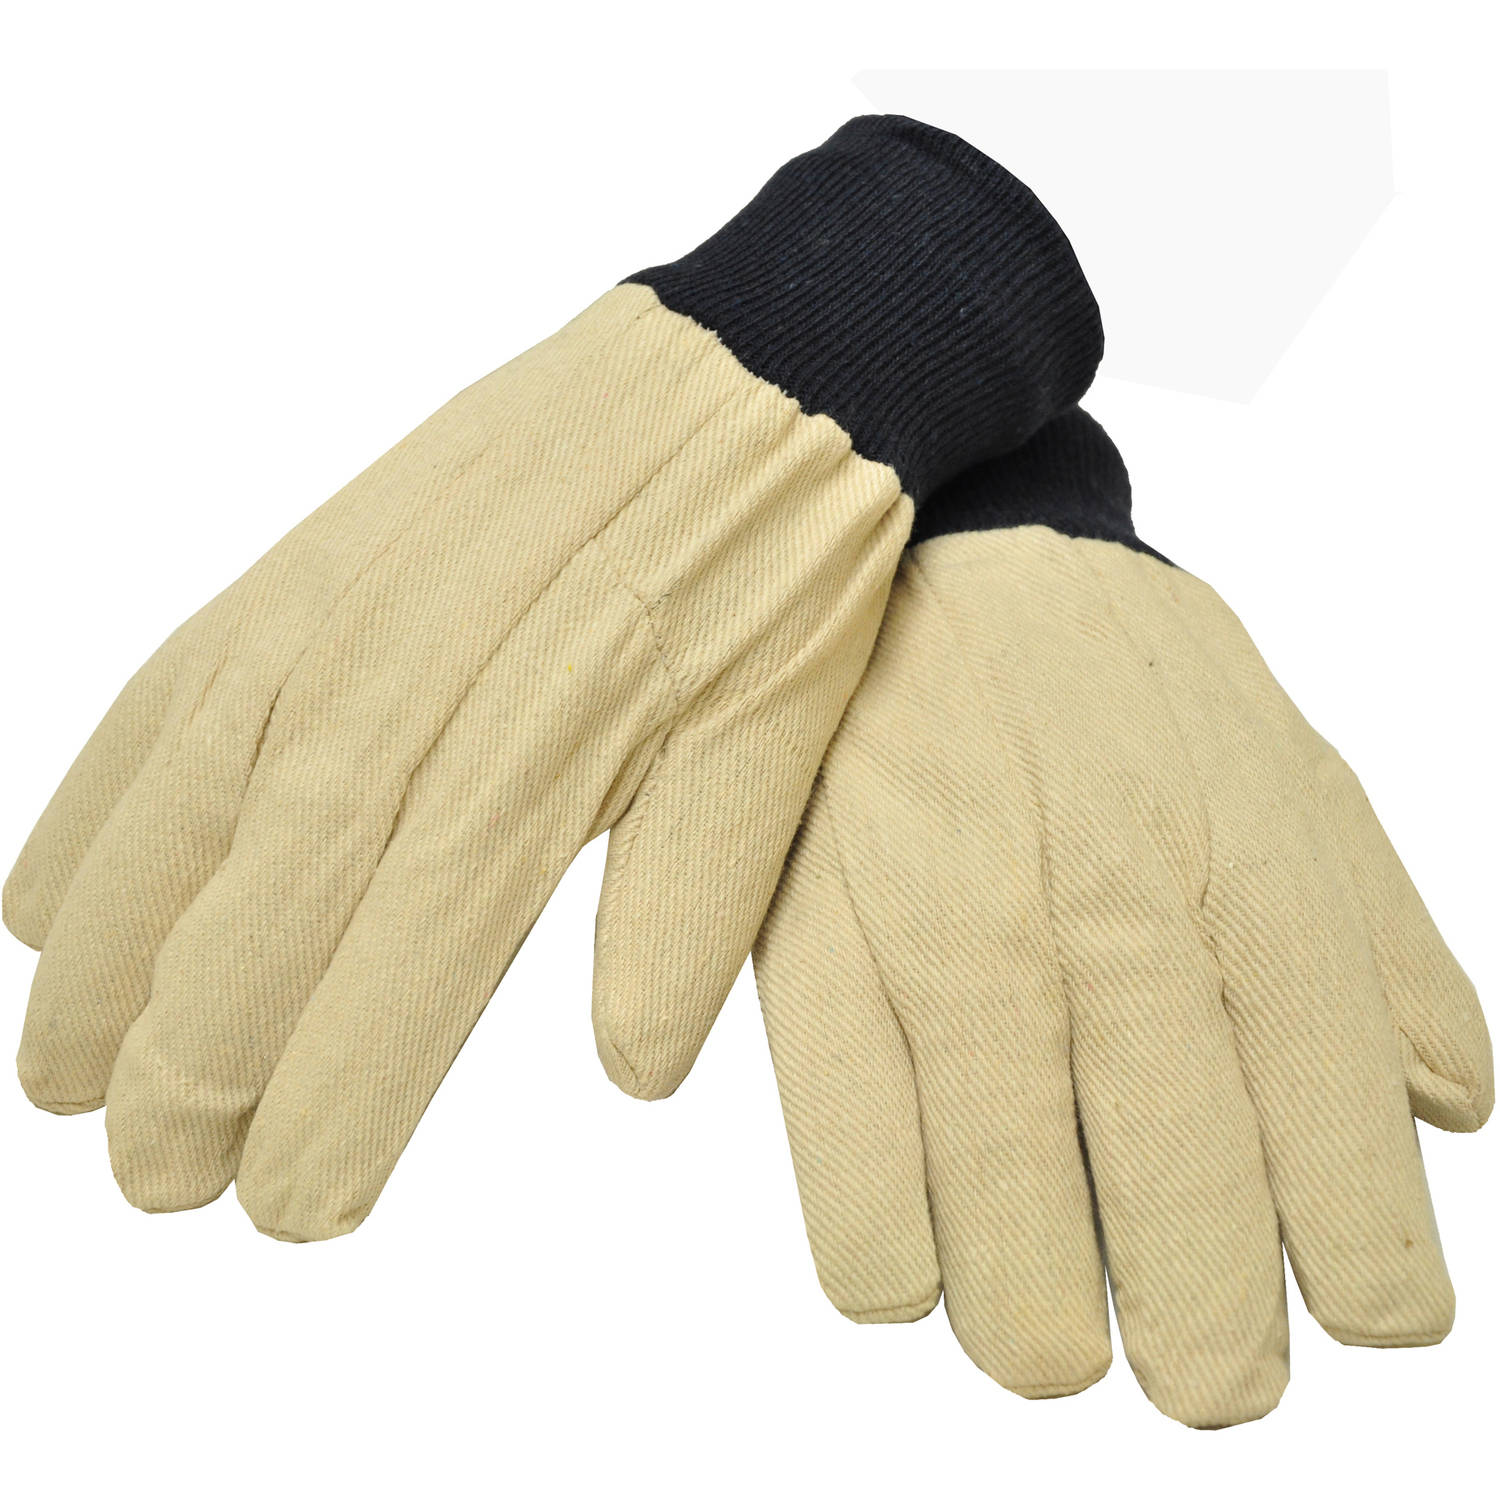 G & F Men's Glove Cotton Canvas, Large, White, 12 Pairs